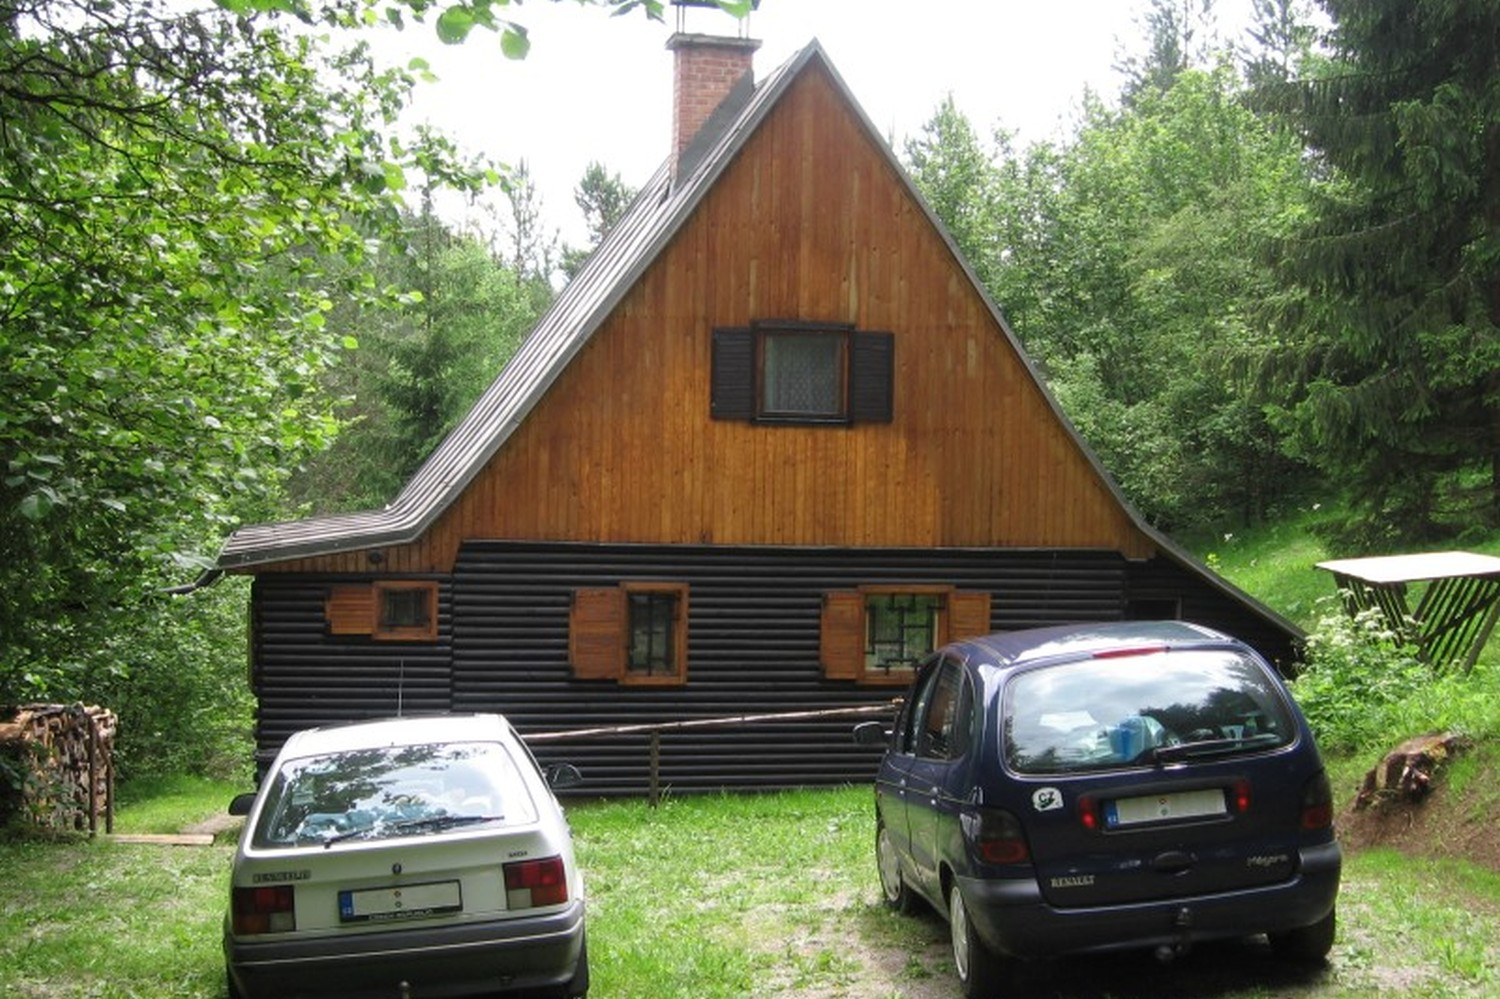 Chata 526 - parkování / Cottage 526 - parking